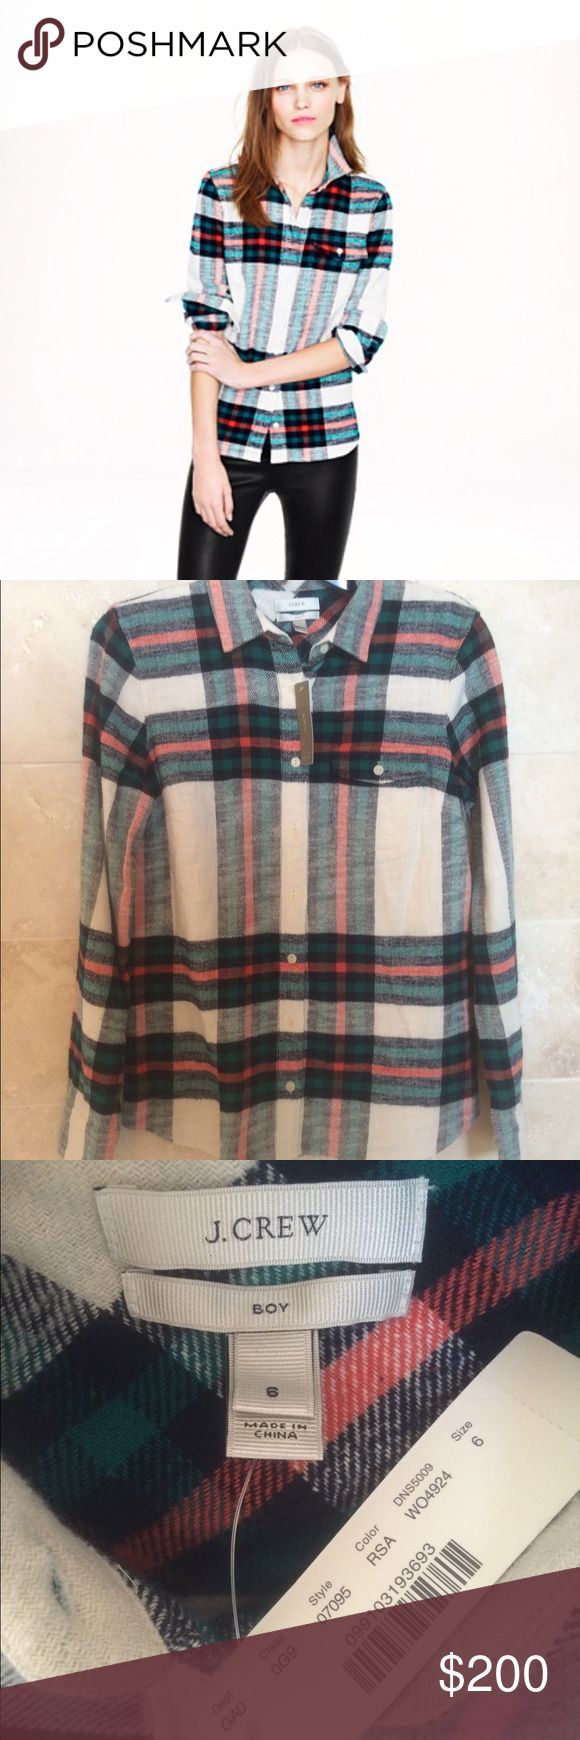 RARE -  J CREW ROCK SALT PLAID SHIRT -  NWT NEW WITH TAGS J CREW'S ROCK SALT PLAID SHIRT FROM J CREW RETAIL. SIZE 6. J. Crew Tops